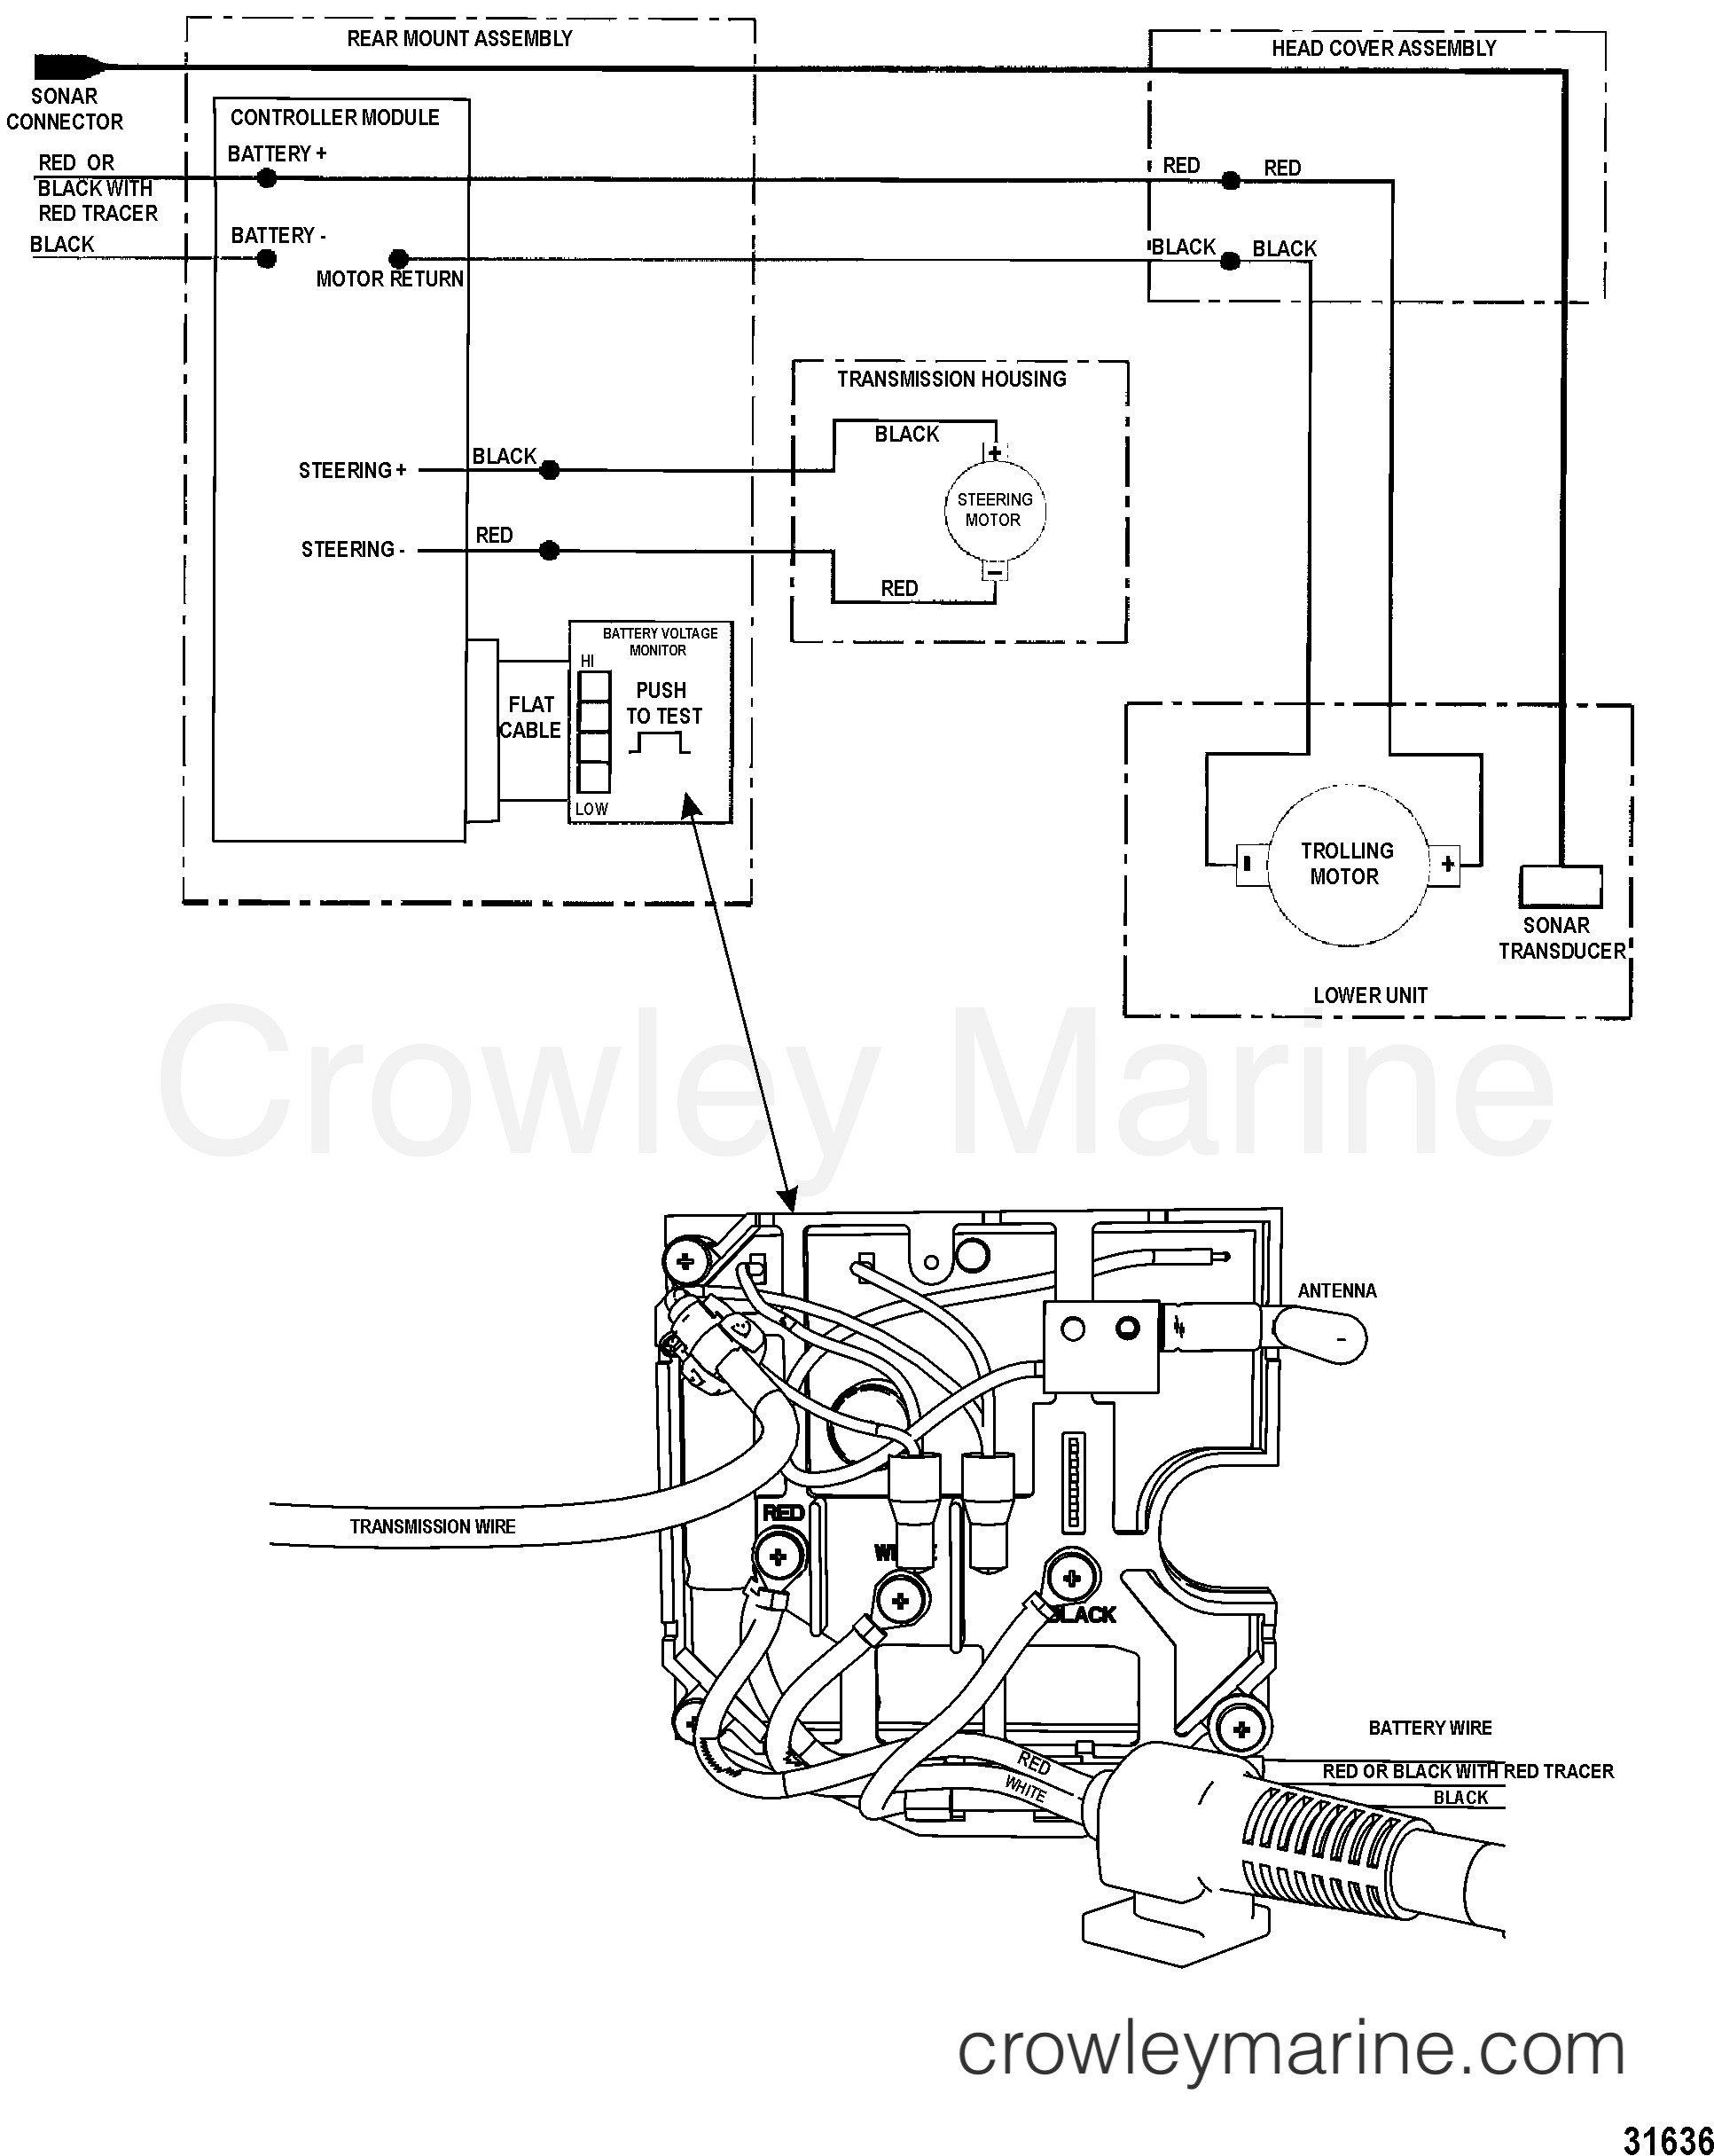 Motorguide Trolling Motor Wiring Diagram Download